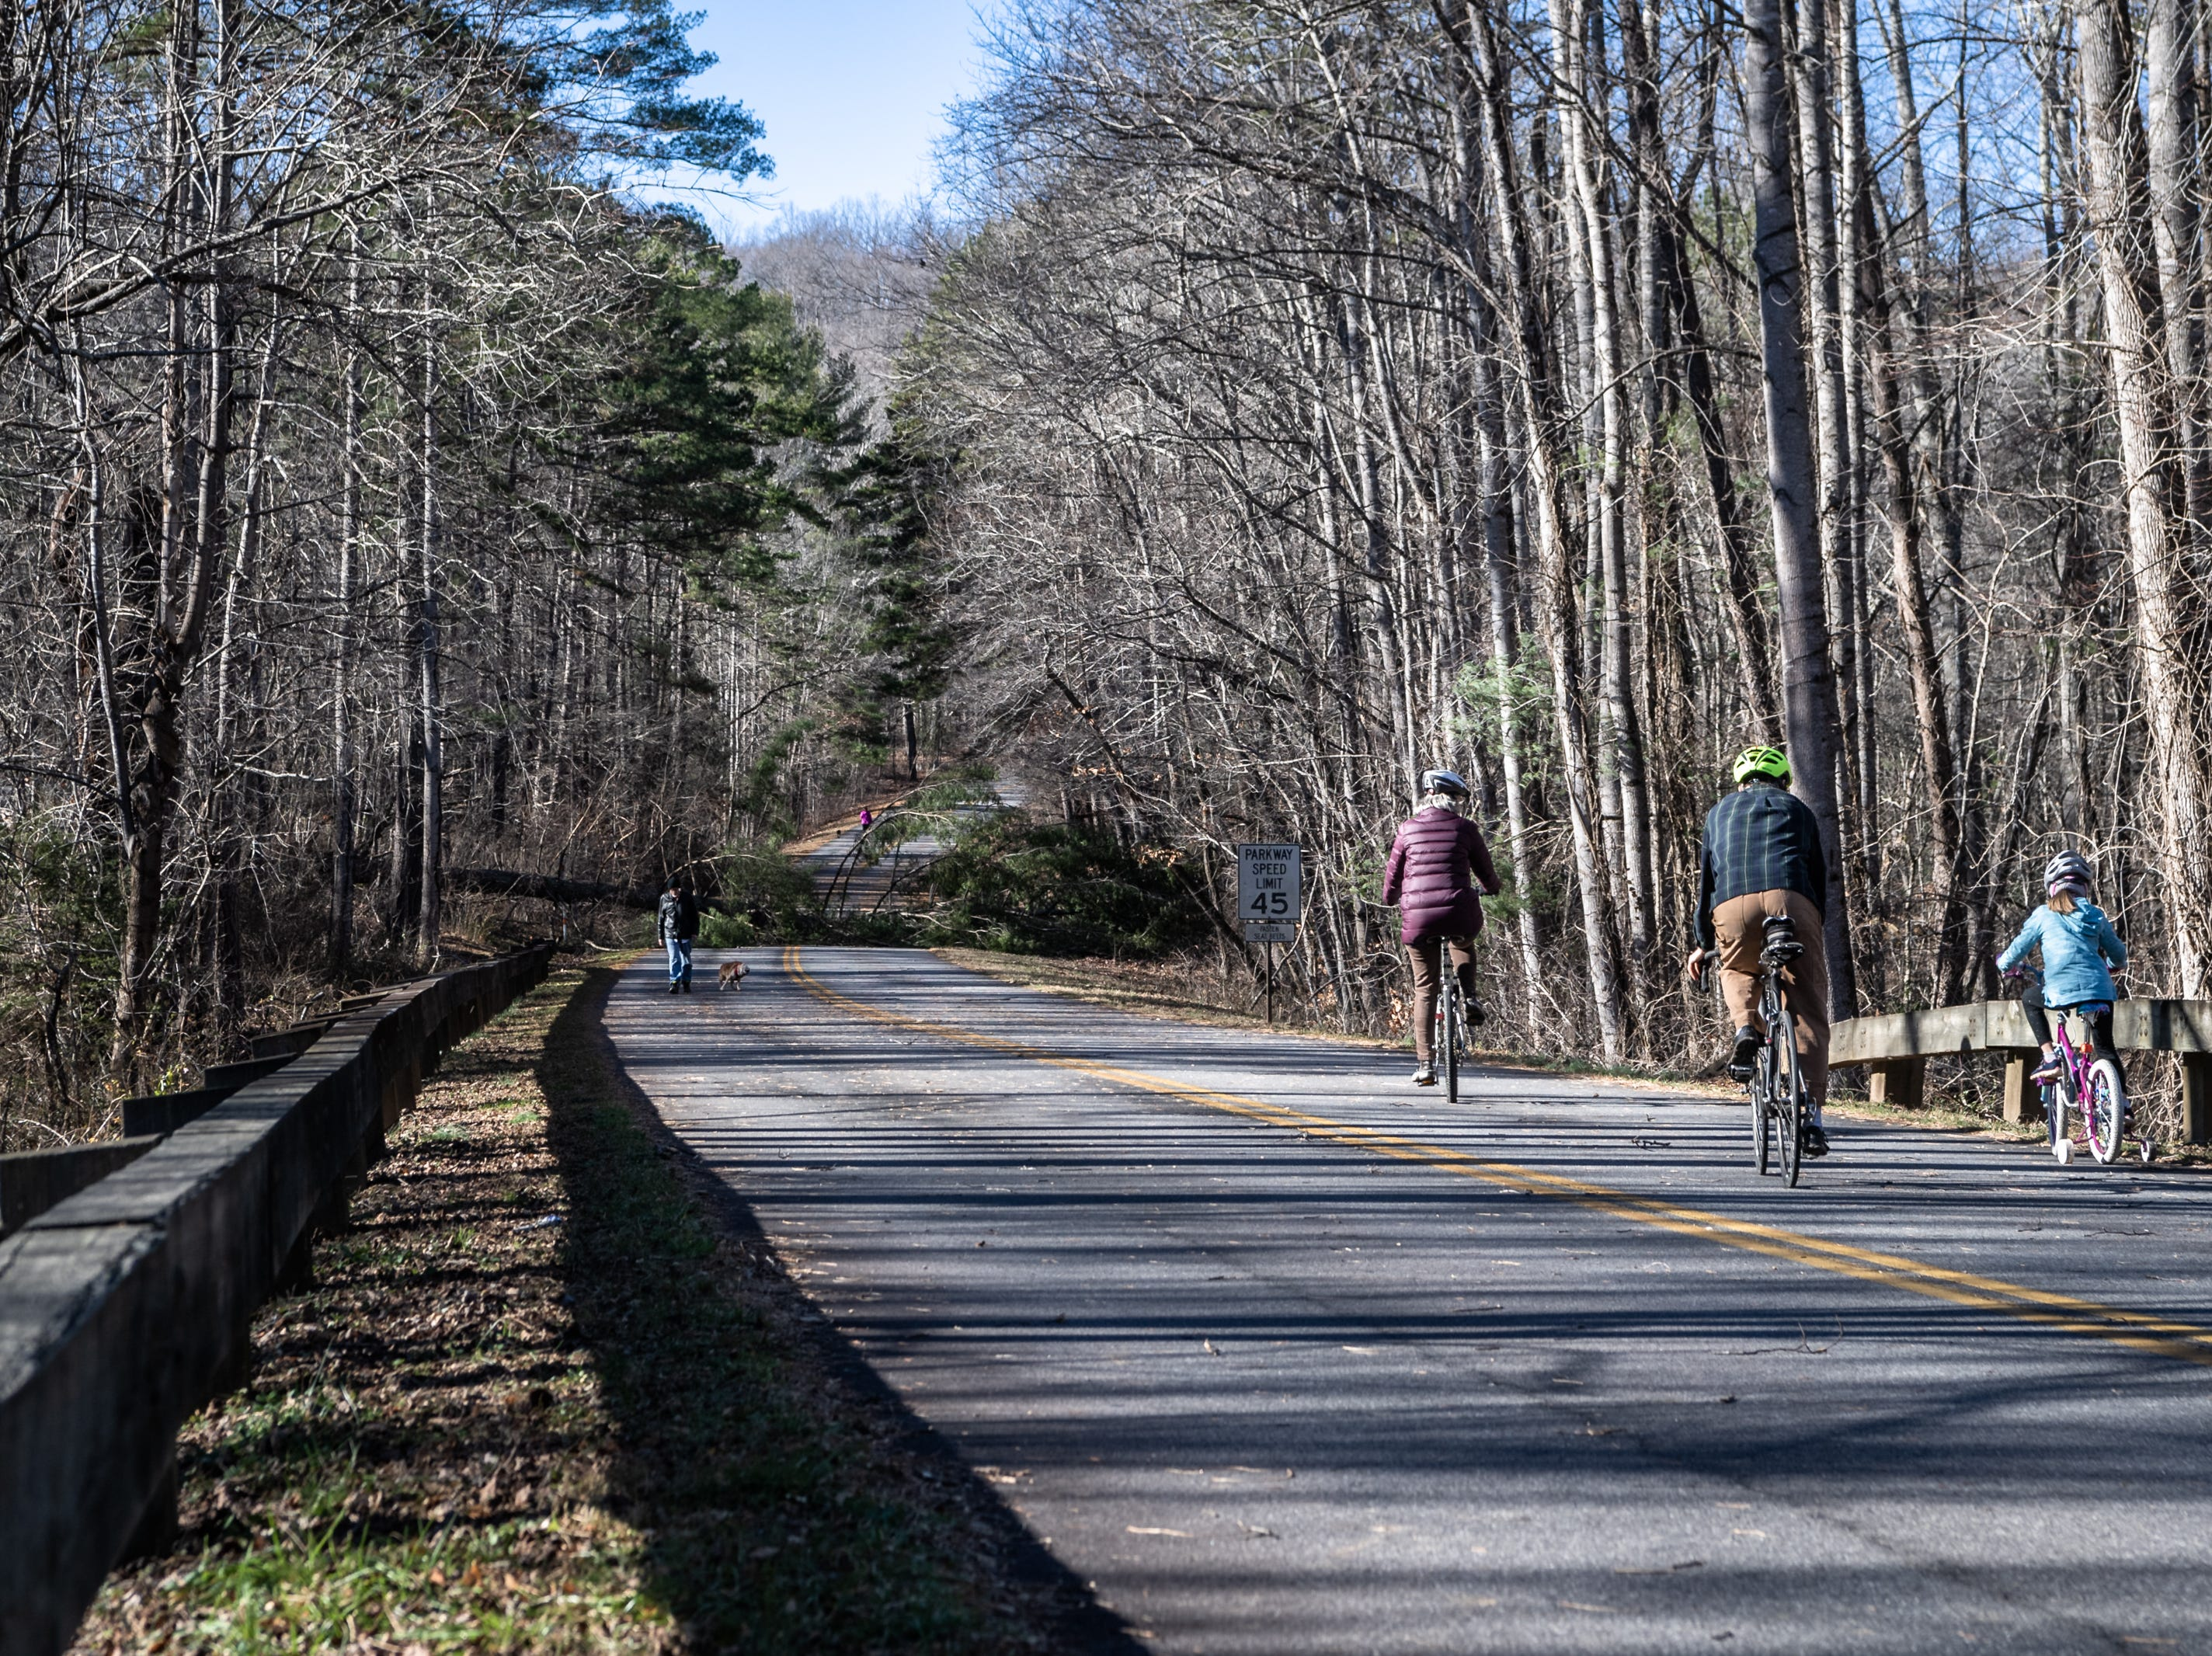 A family visiting the Blue Ridge Parkway ride their bicycles past the gate on a section of the Parkway just north of the Folk Art Center where a fallen tree lies, Jan. 5, 2019. Much of the Parkway has been closed due to the government shut down and maintenance such as clearing debris is not possible.